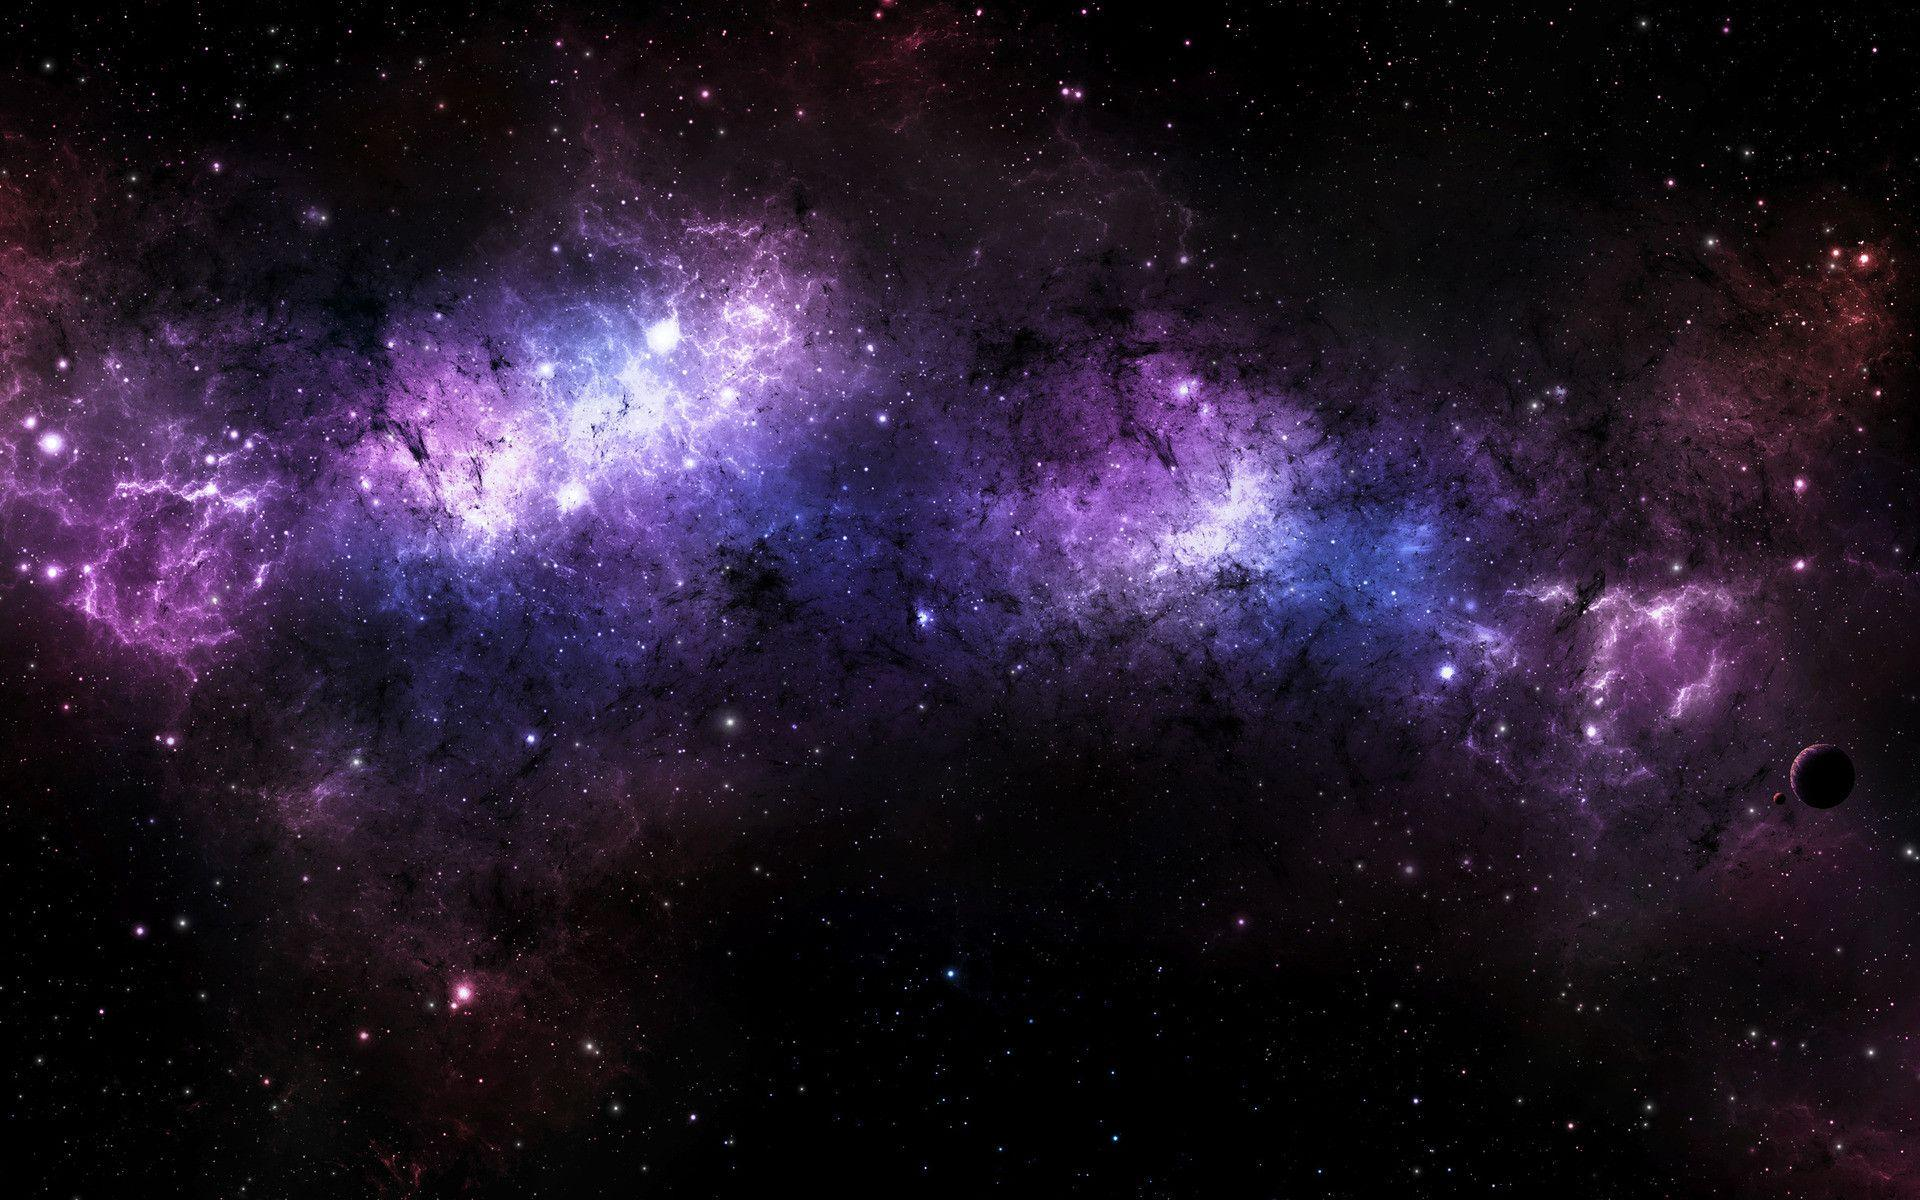 space wallpapers for desktop - photo #18